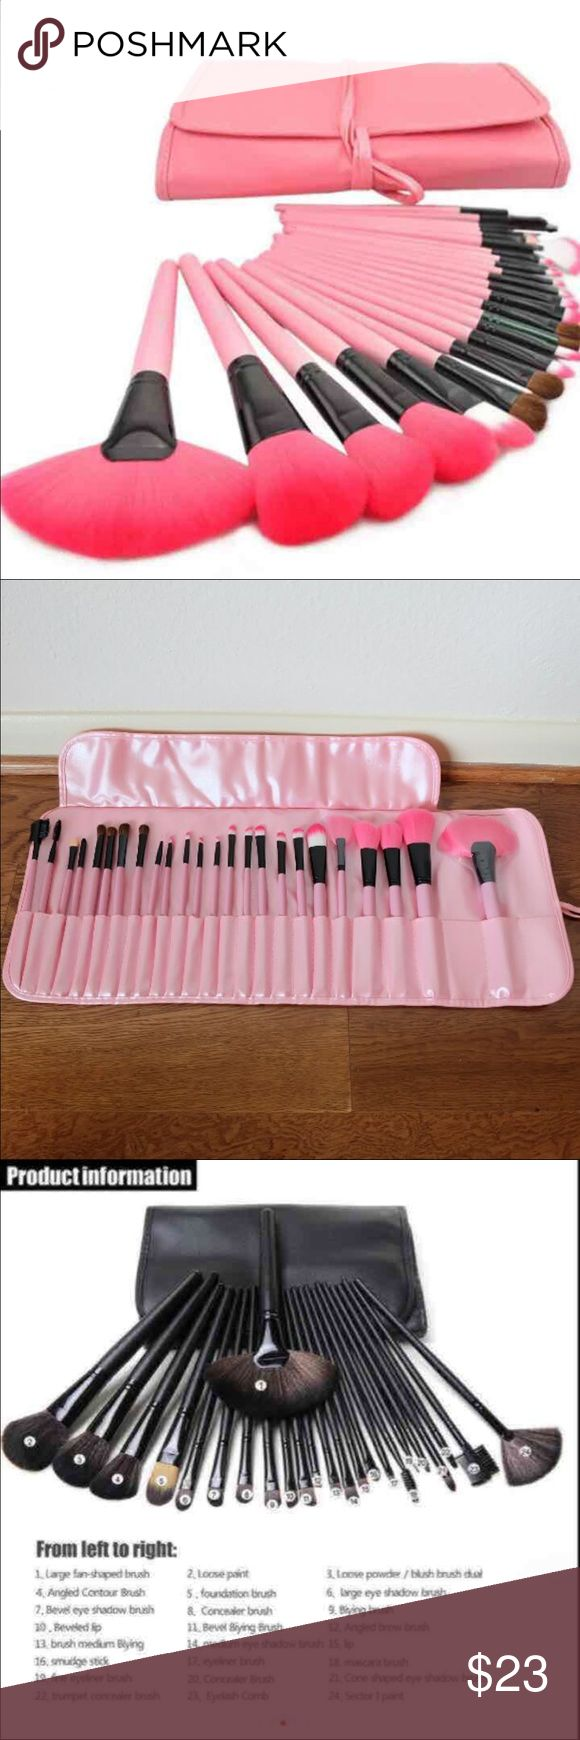 New 24pcs brushes set 24 pcs brushes markup set  The most professional  face makeup brush, very lovely set Suit for professional make up artist, makeup lover 100% handmade with good wood, horse hair and synthetic fiber , your brushes can be used for several years 100% good quality and new brand Coming with a Pu bag, perfect gift for your friends and yourself   Specification: 1.Material: Soft horse hair, synthetic hair and wood 2.Colour: As like pictures  3.Size:17-21cm(Approx)  BEAUTIFUL AND…